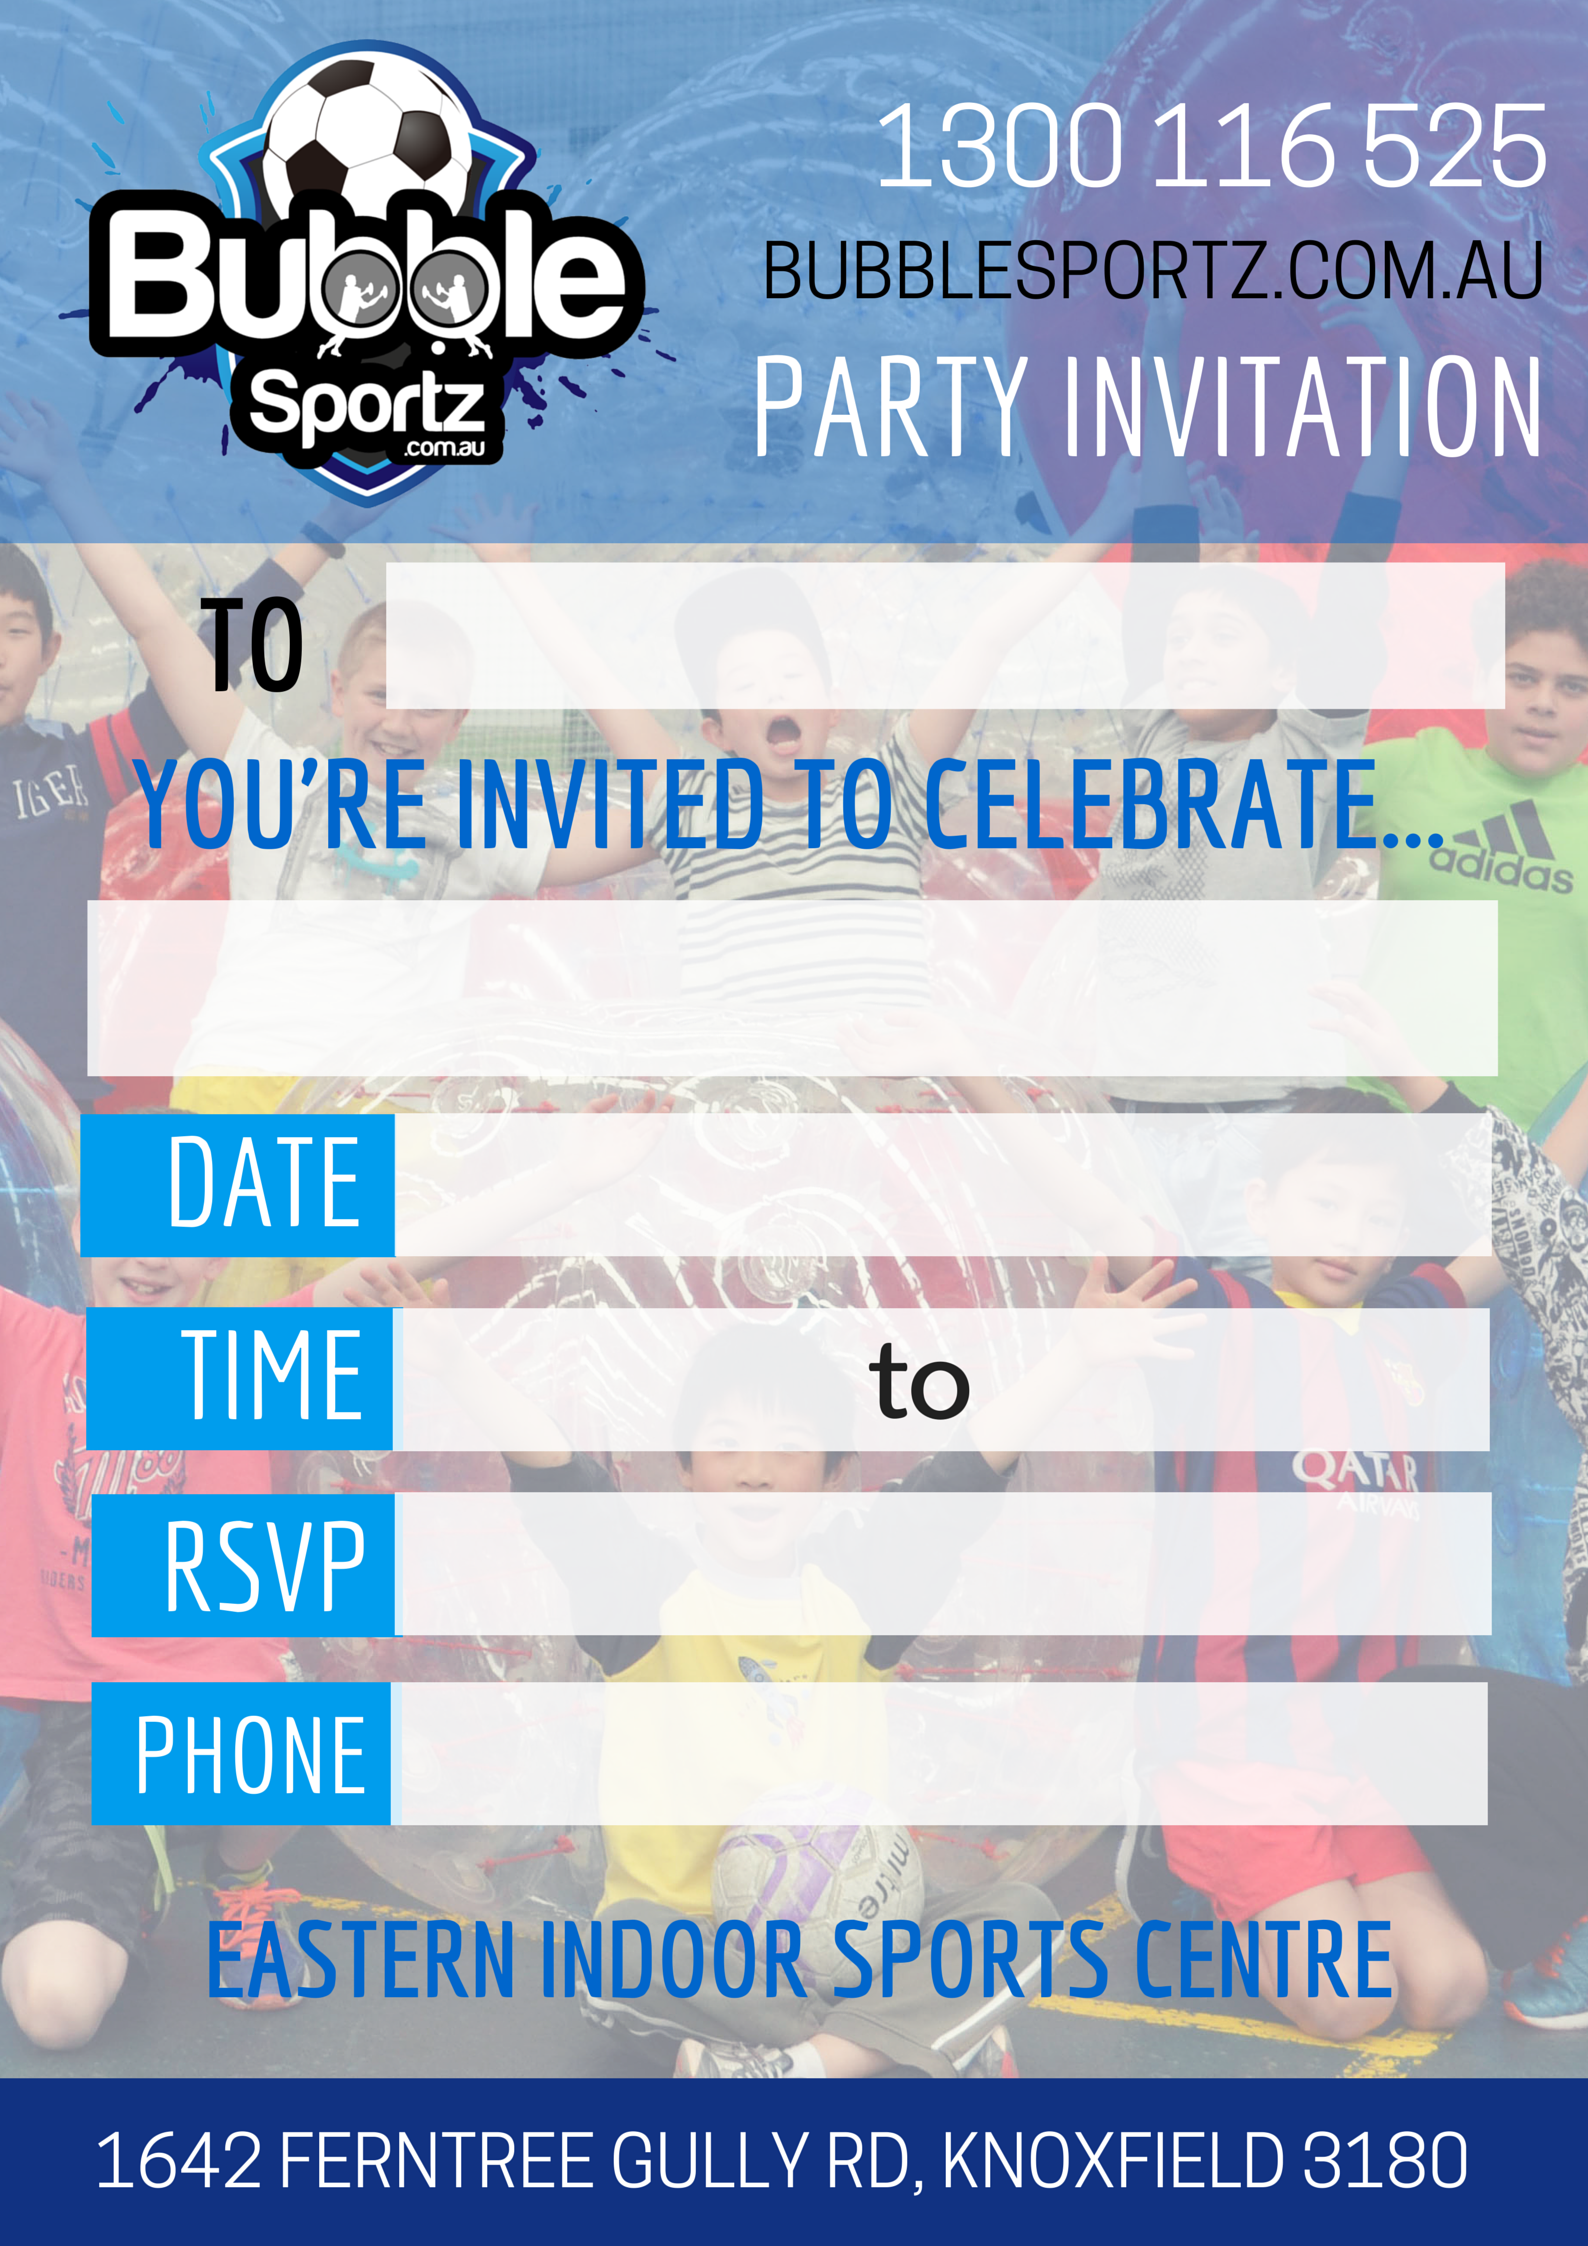 21 Party Invitations was nice invitations layout